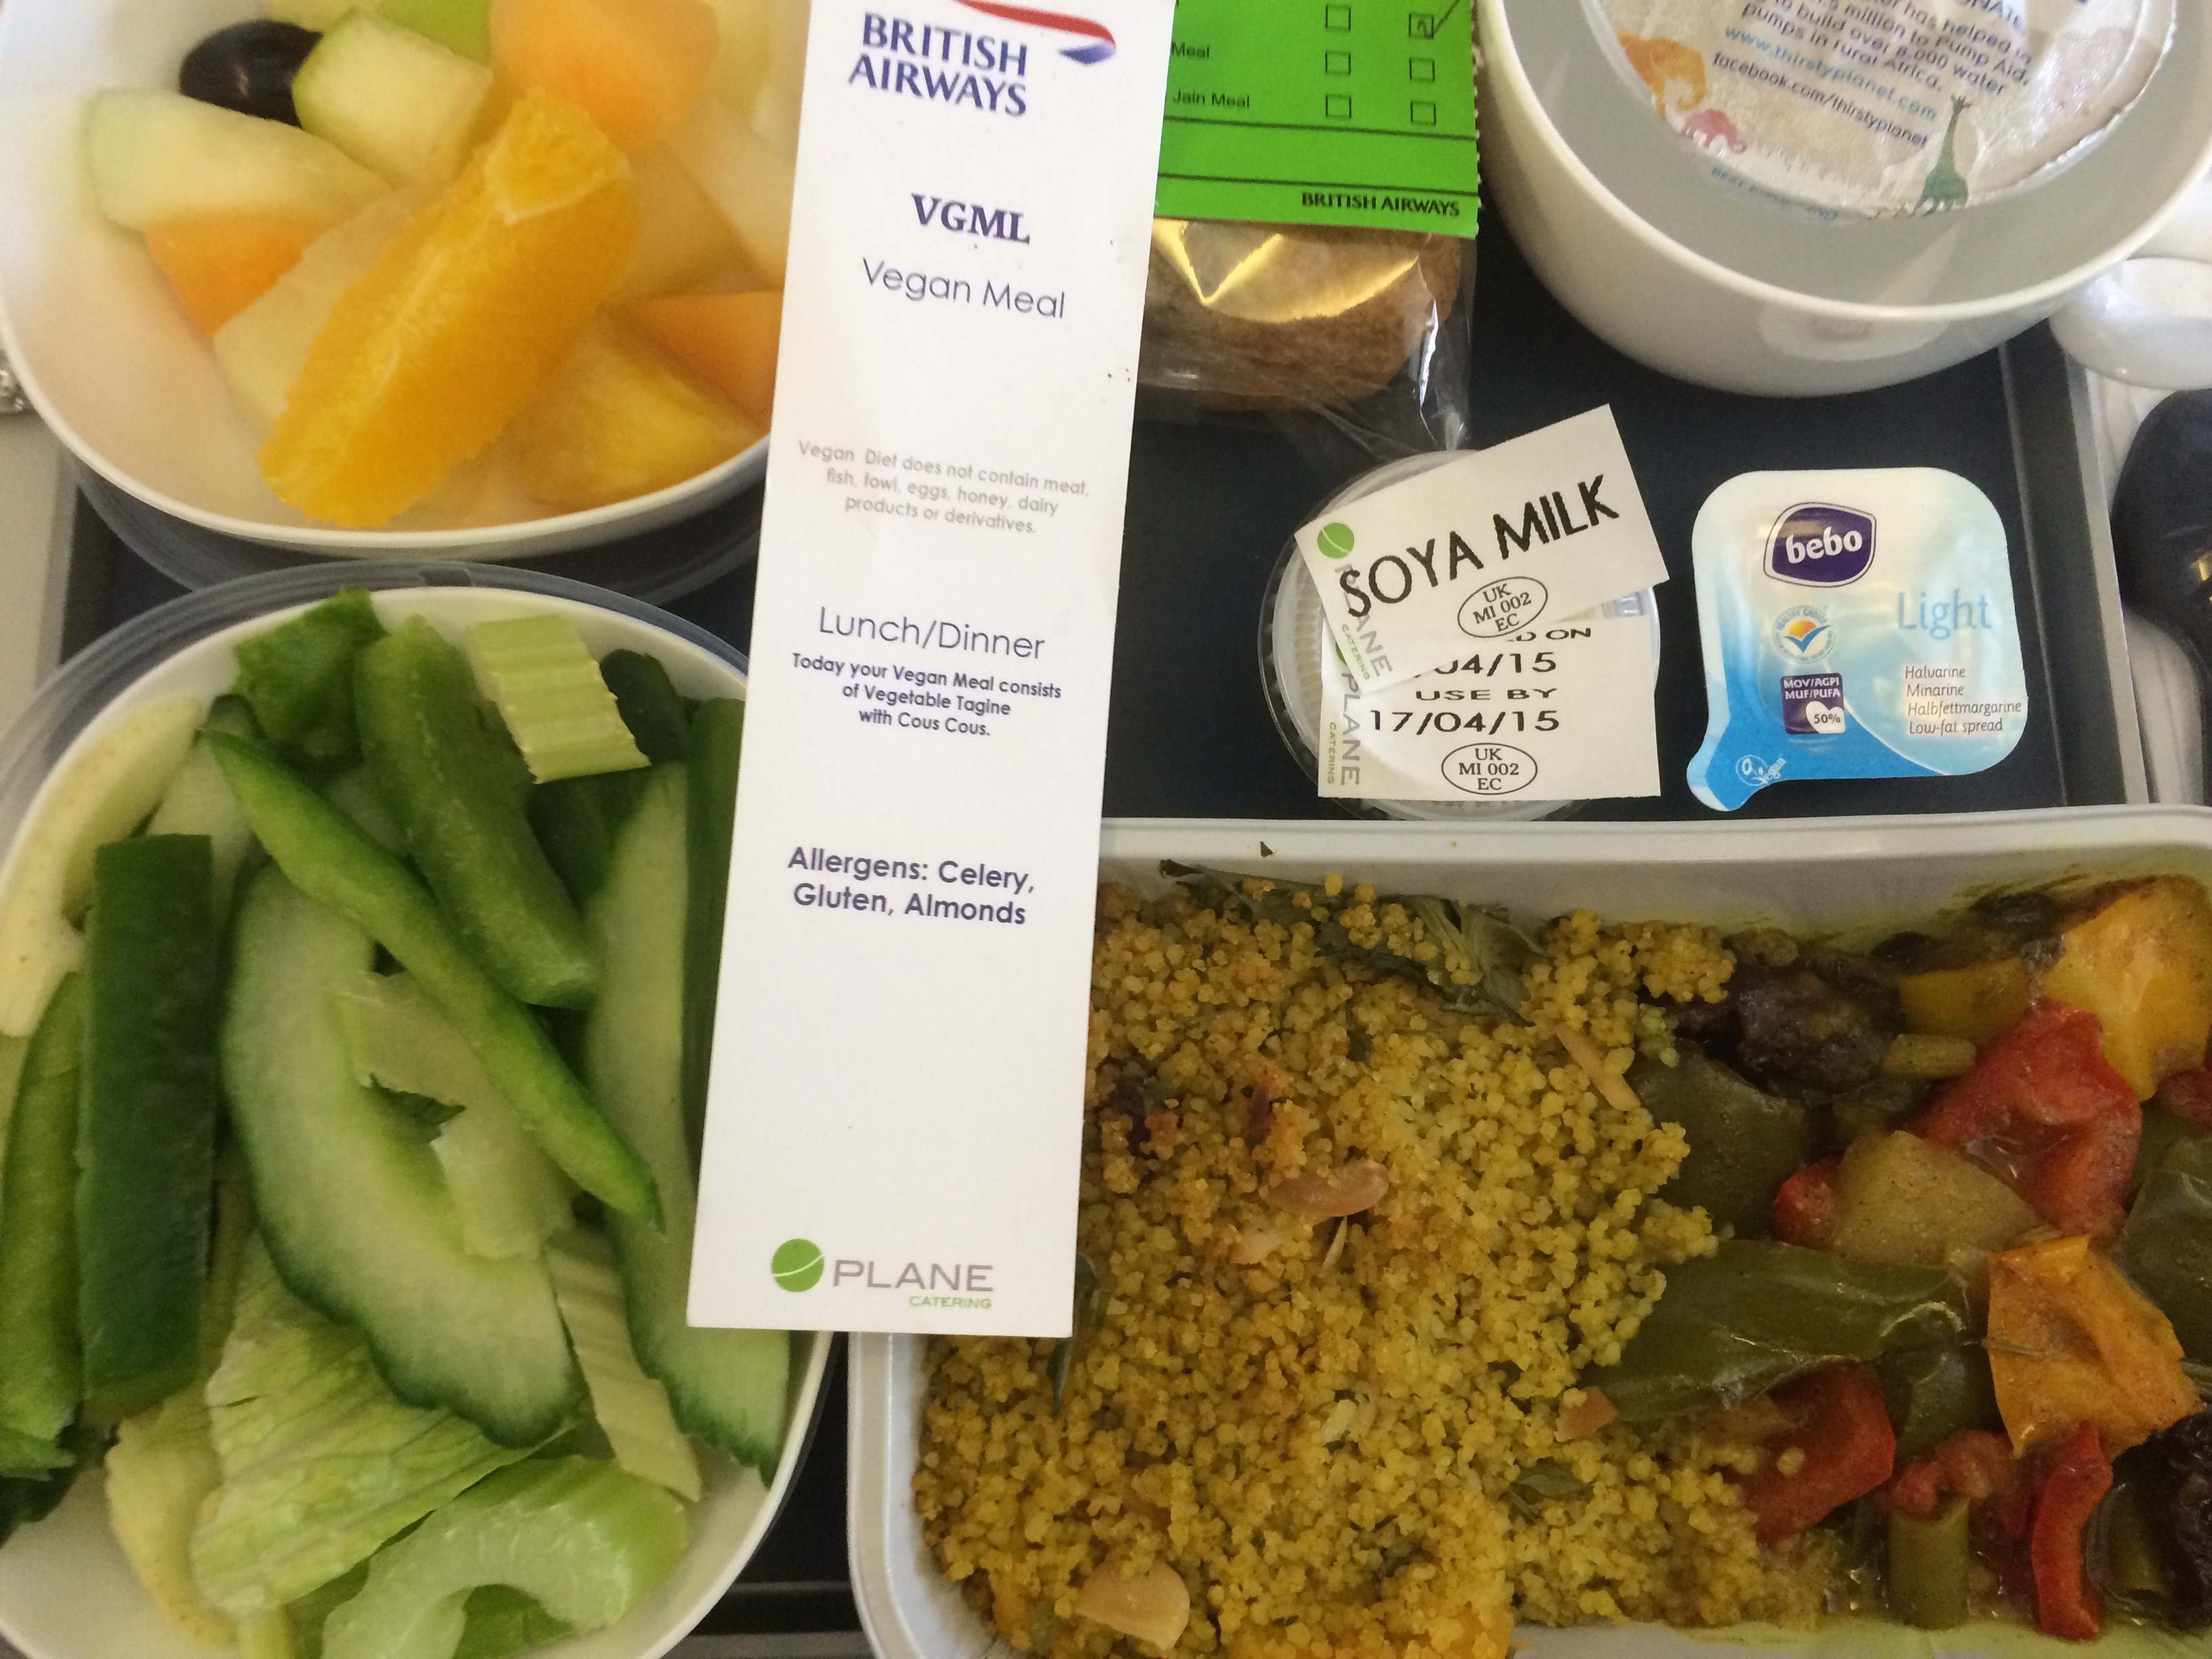 https://i1.wp.com/fatgayvegan.com/wp-content/uploads/2015/04/Airline-meal.jpg?fit=3264%2C2448